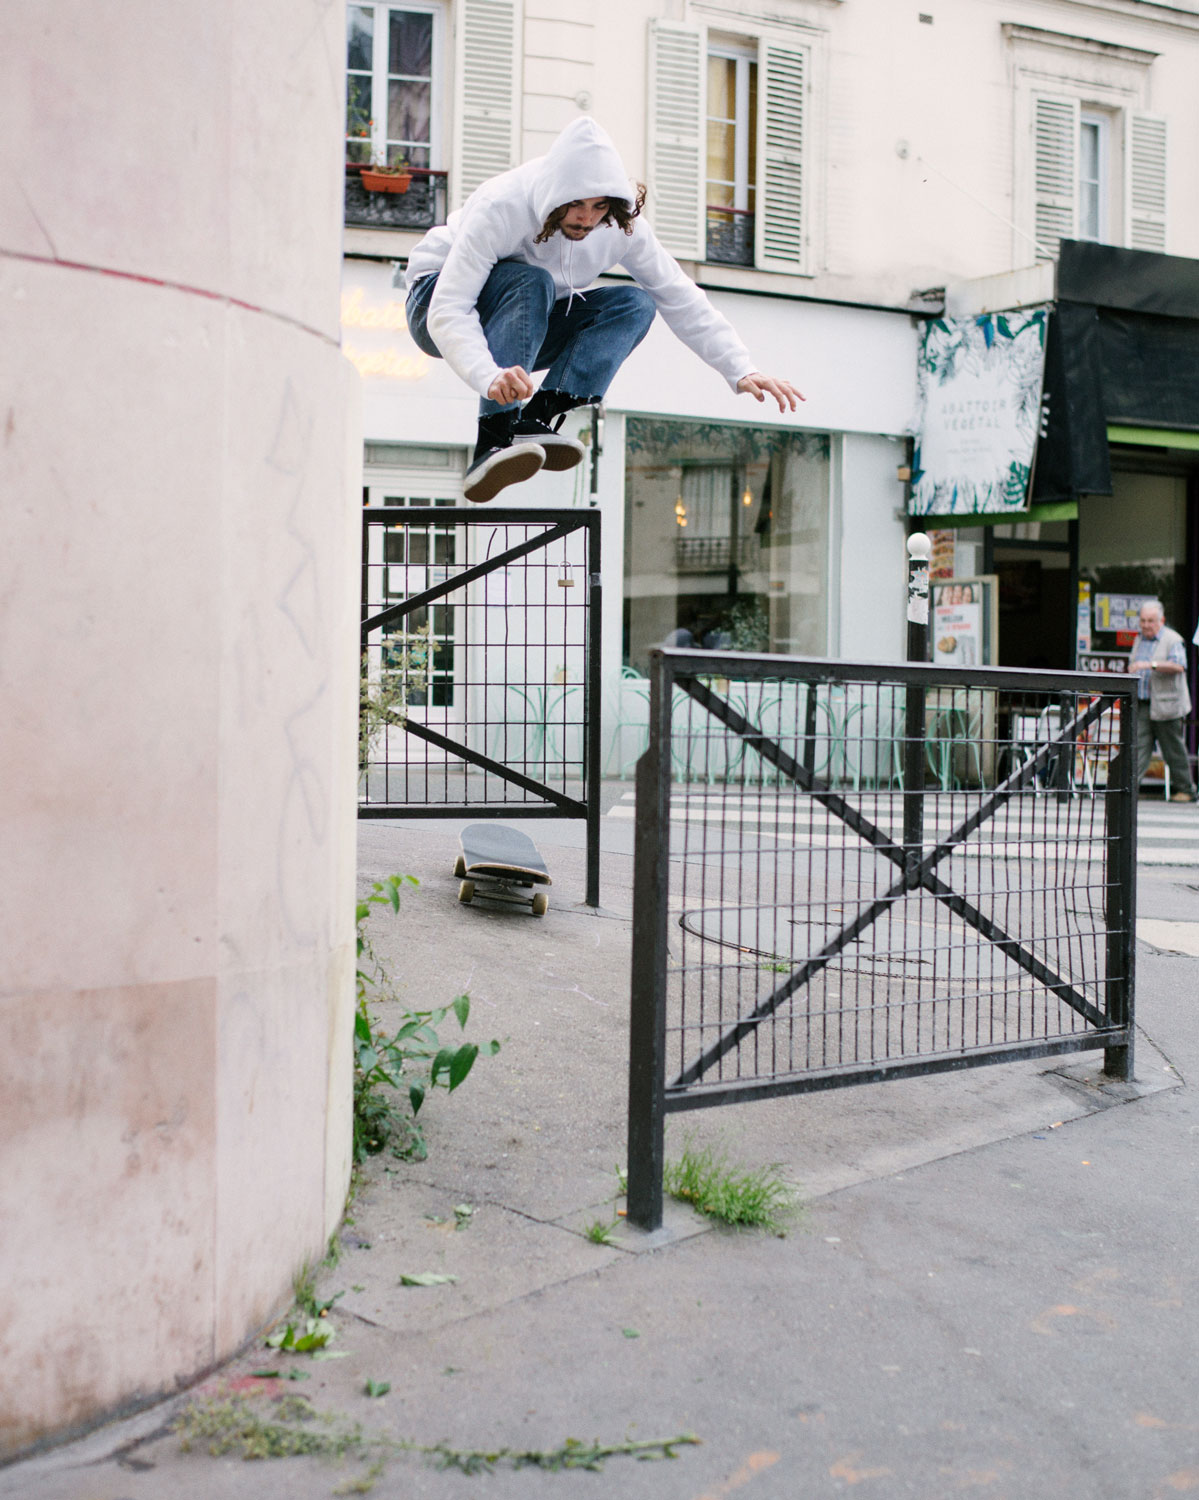 Levi4_MV170901_PARIS_SKATE_LEVIS_290